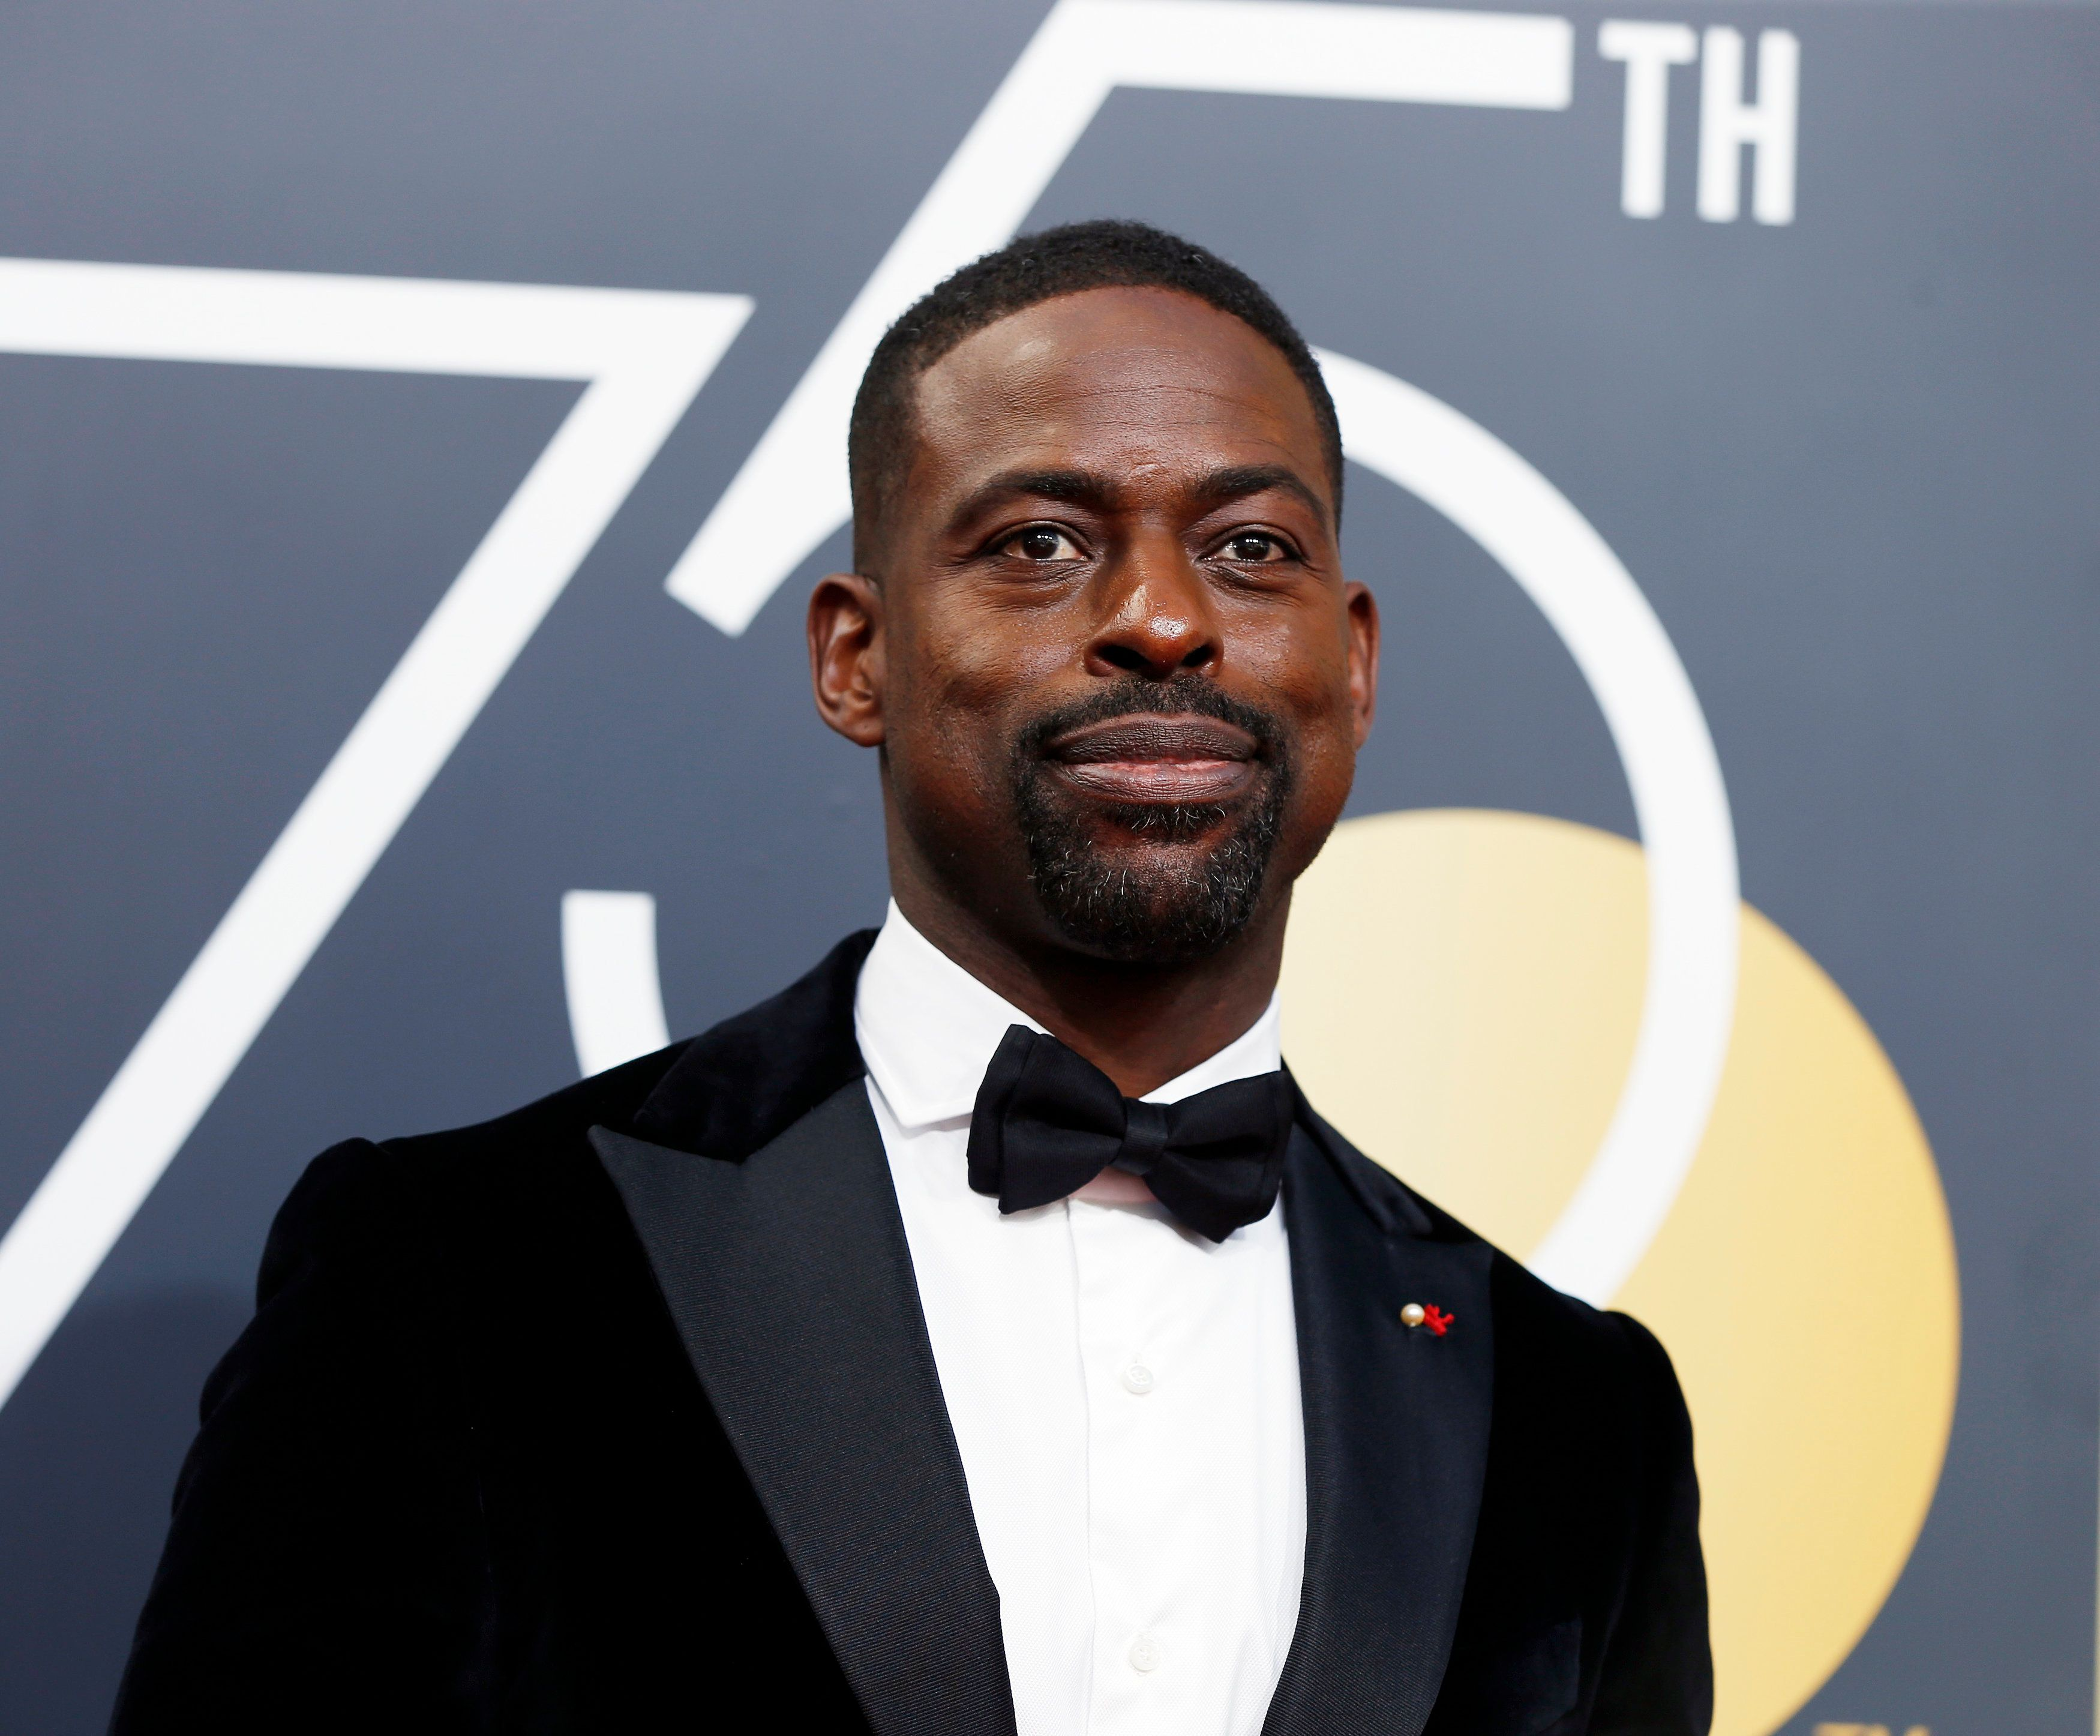 75th Golden Globe Awards – Arrivals – Beverly Hills, California, U.S., 07/01/2018 – Sterling K. Brown. REUTERS/Mario Anzuoni